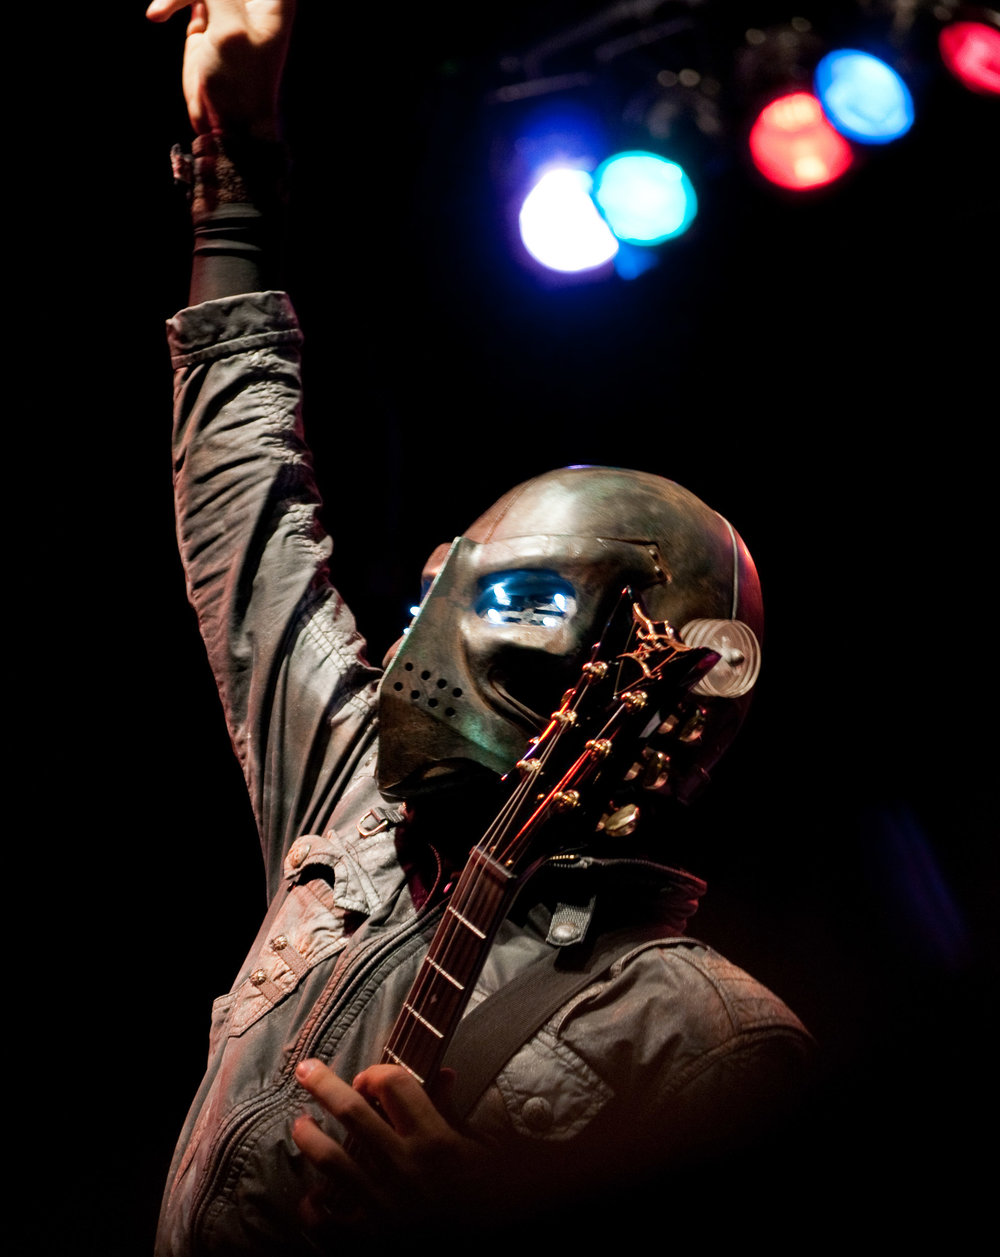 Powerman 5000 live in concert | Guitar solo, Rock show | Photo by BillyBengtson.com